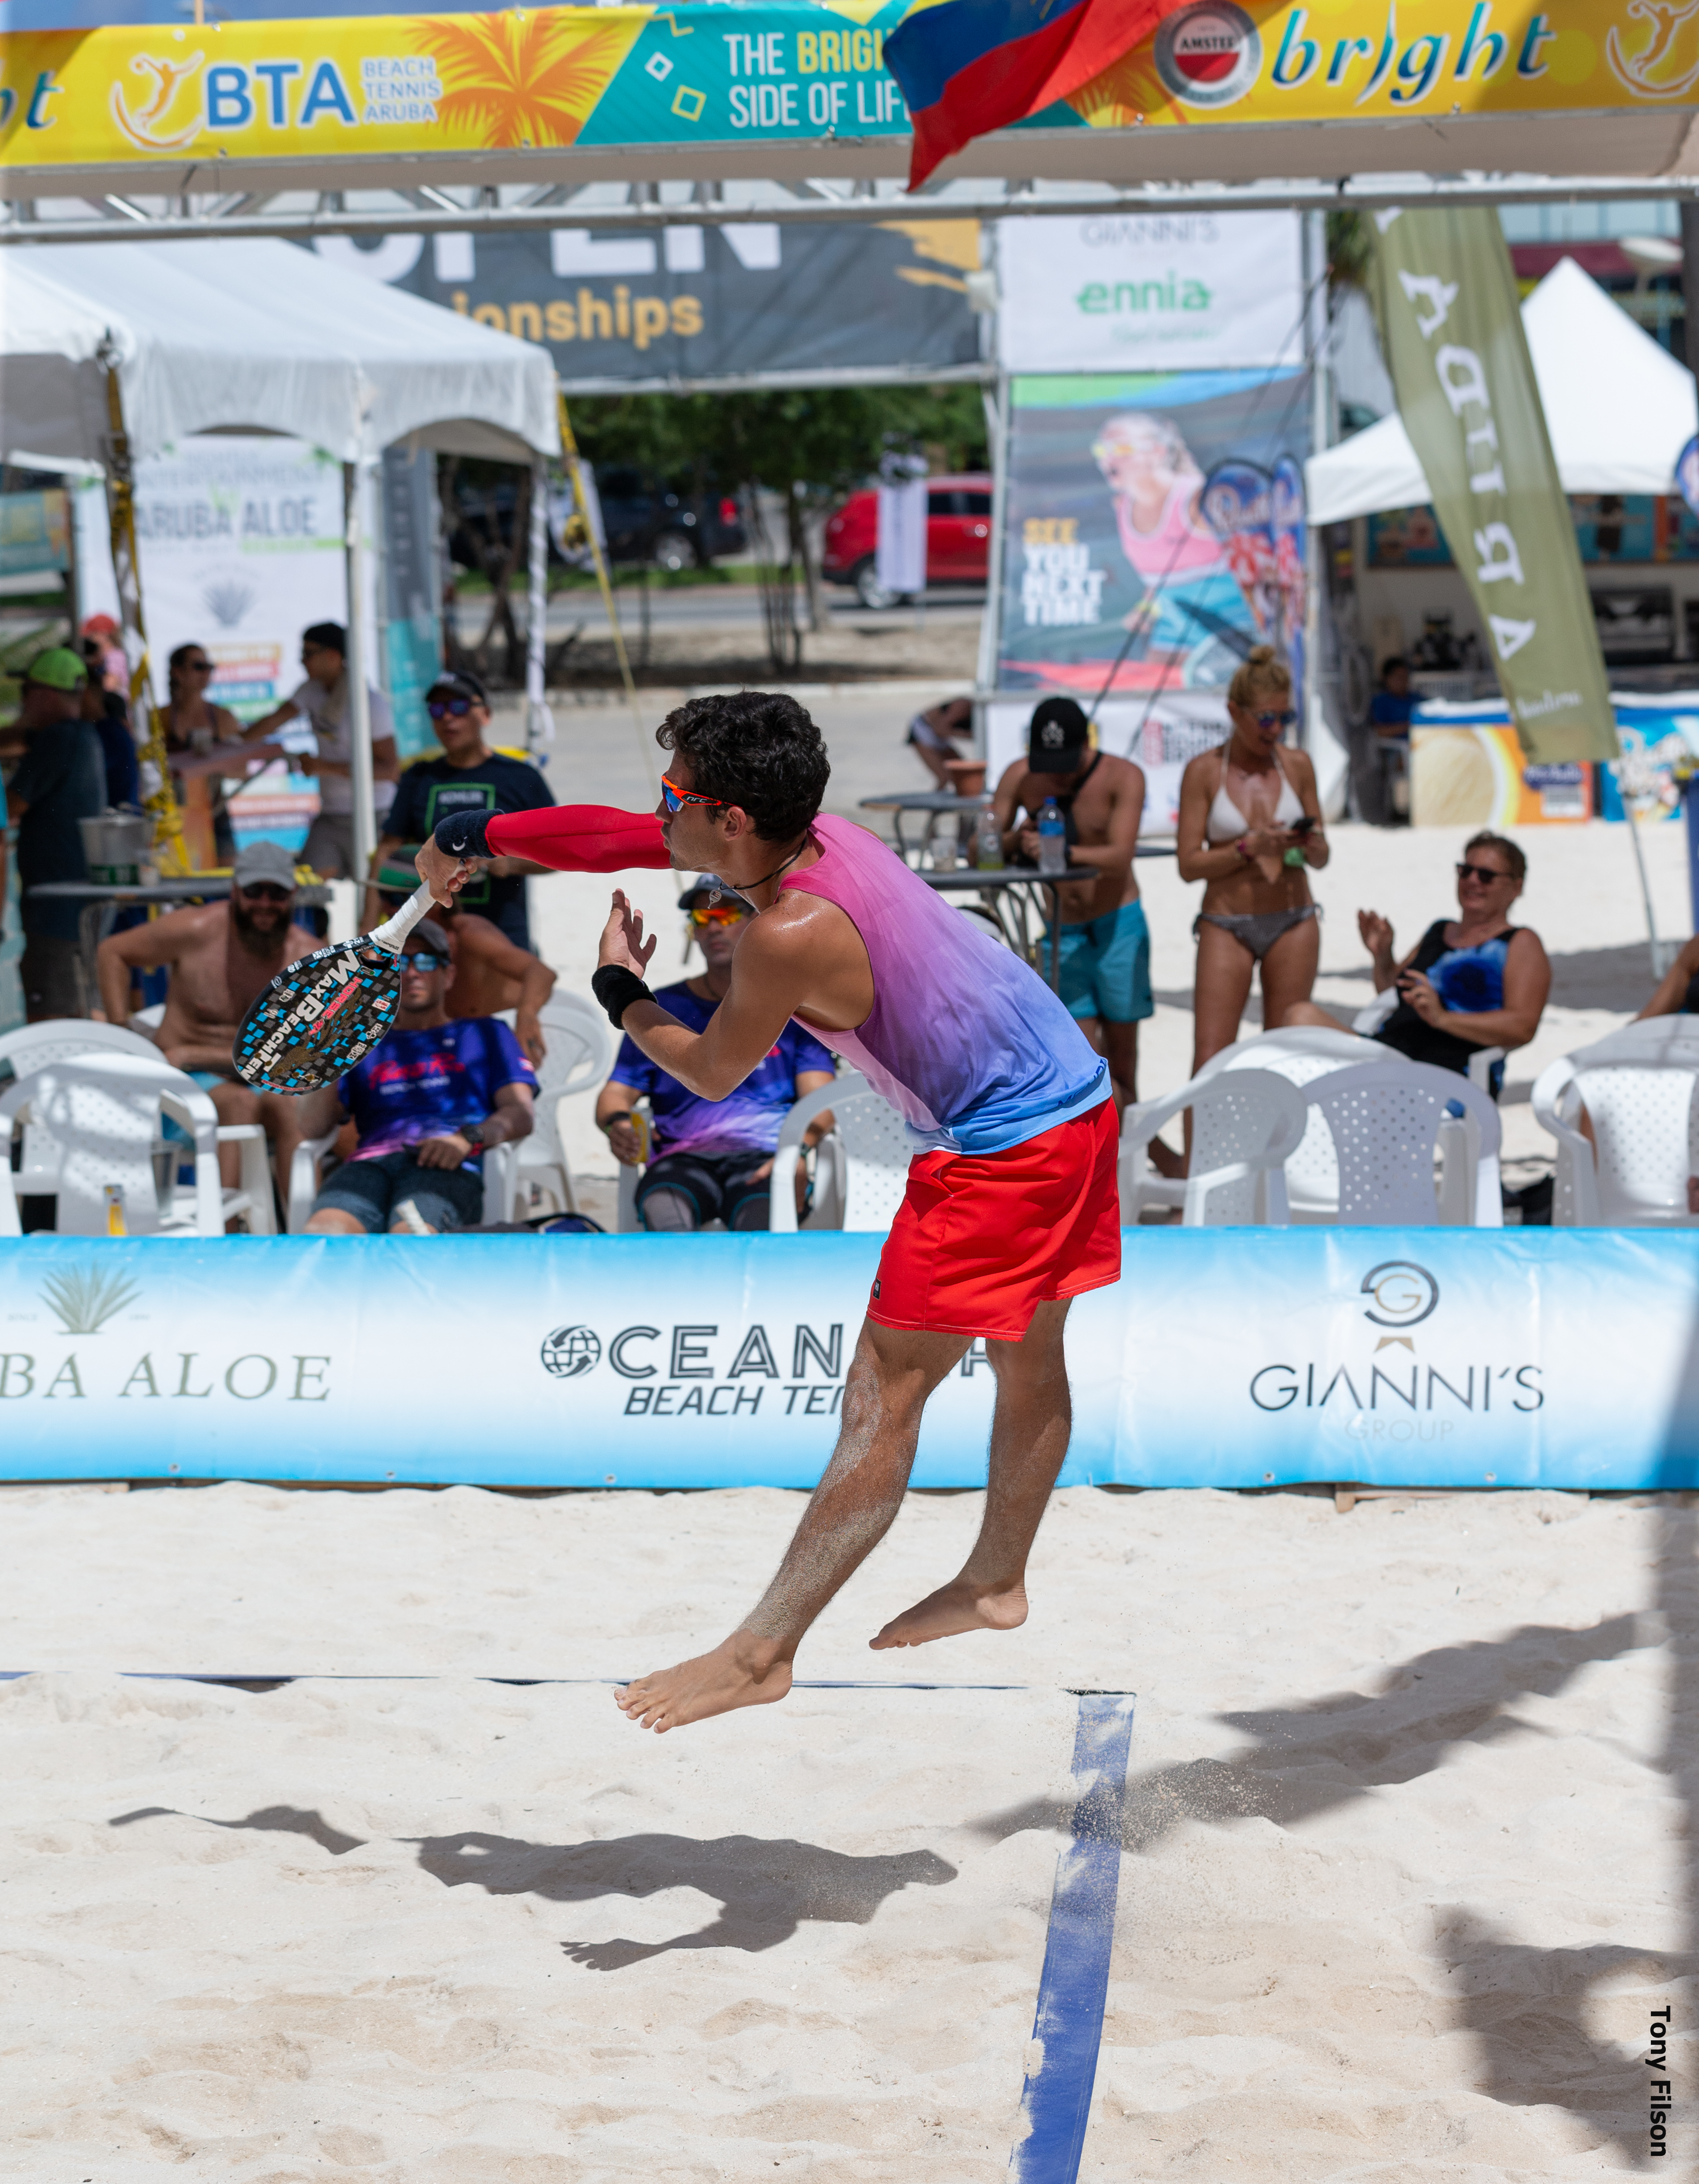 Aruba Beach Tennis BTA